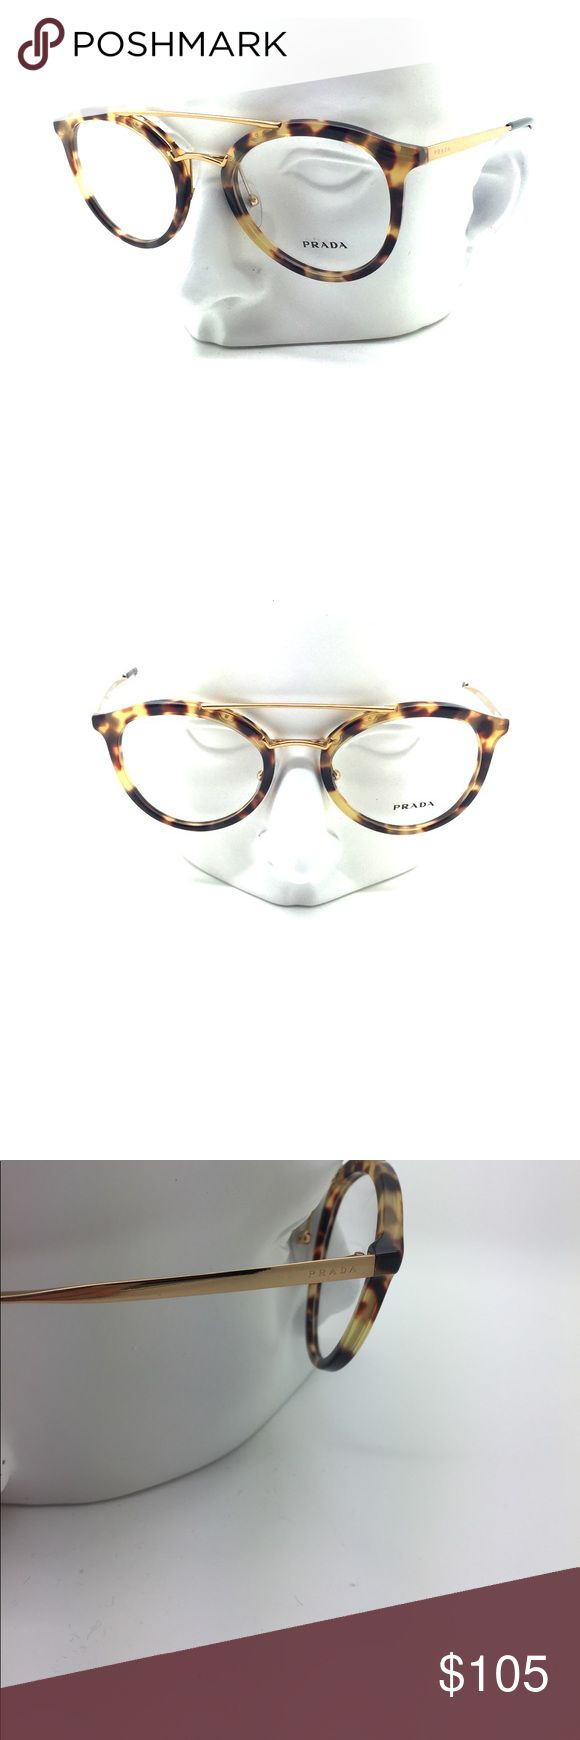 New Prada VPR 15T 7S0-1O1 52mm Eyeglasses New pair of Prada VPR 15T 7S0-1O1 Eyeglasses. Frame size is 52-21-140. Frame is a Tokyo tortoise color with original Prada demo lenses installed. Made in Italy. Eyeglasses will come with Prada Eyeglasses case and cleaning cloth. Guaranteed authentic! Prada Accessories Glasses